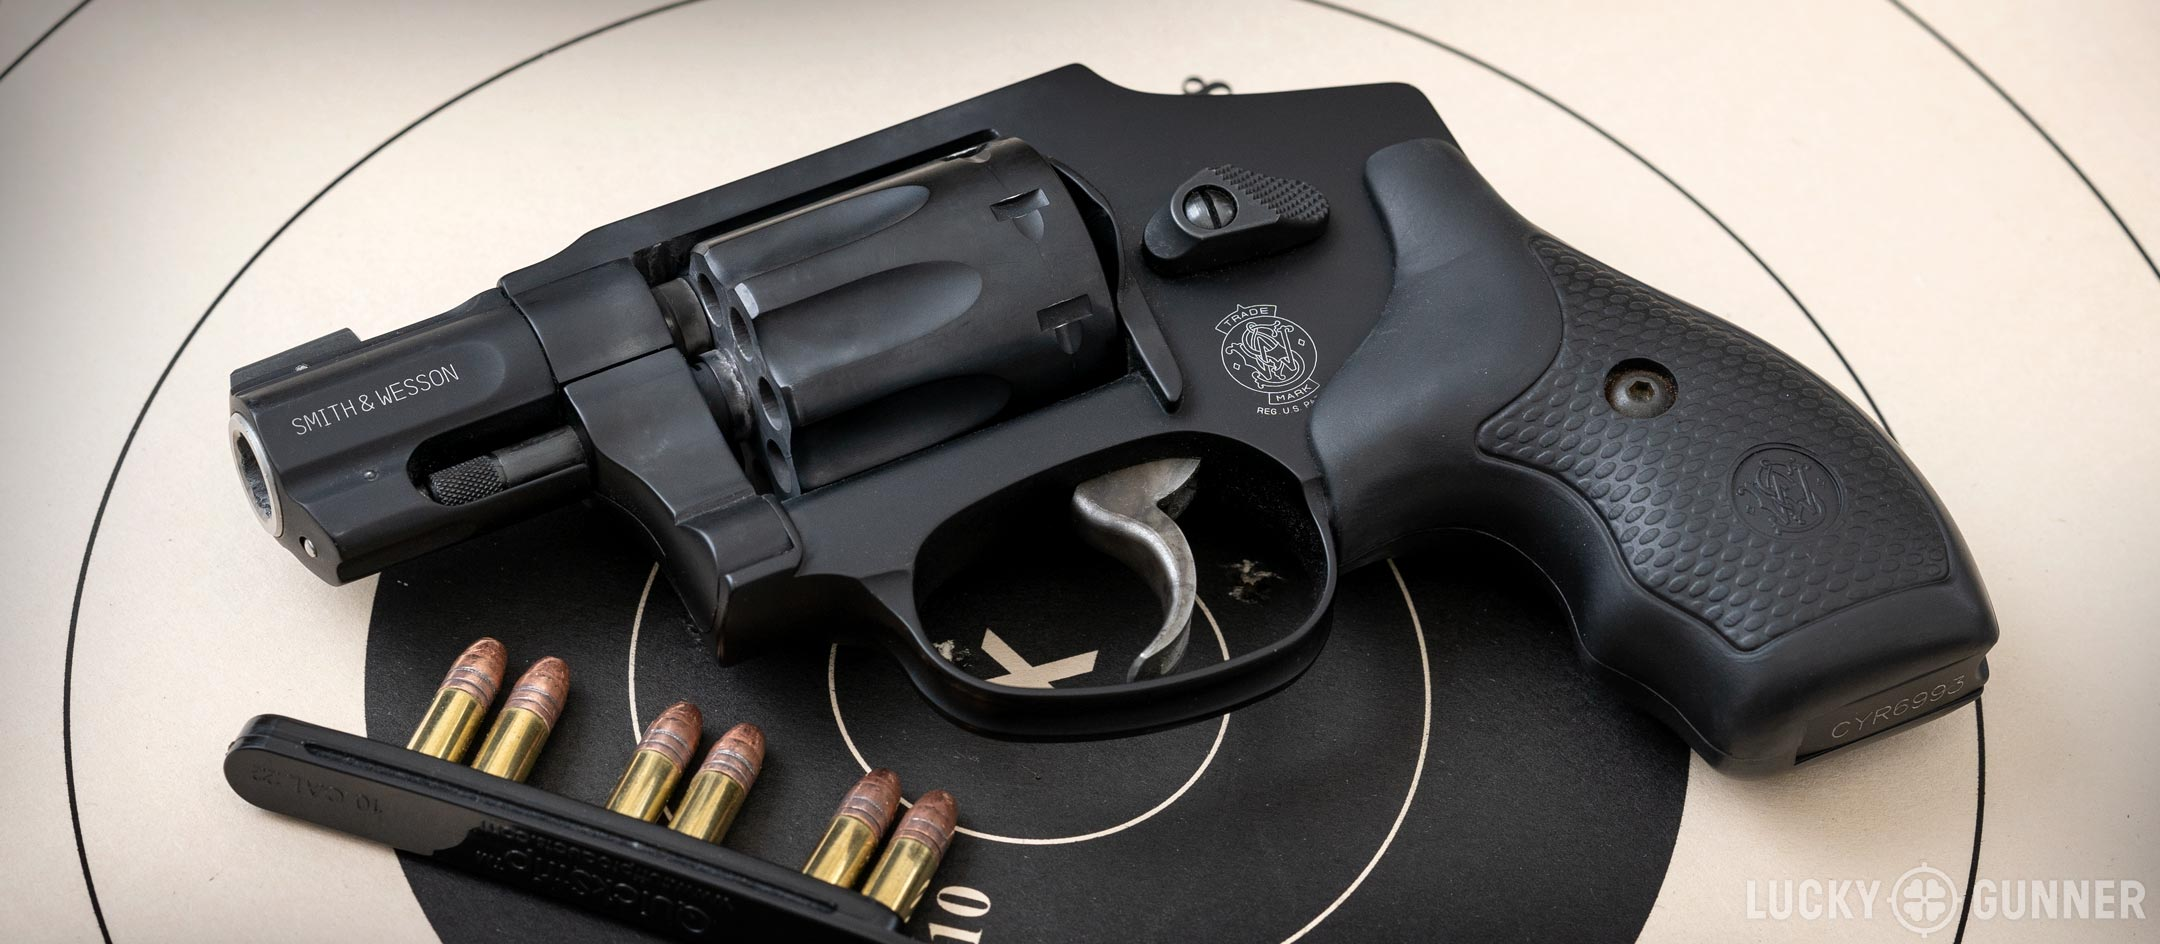 The Best  22 LR Handguns for Concealed Carry - Lucky Gunner